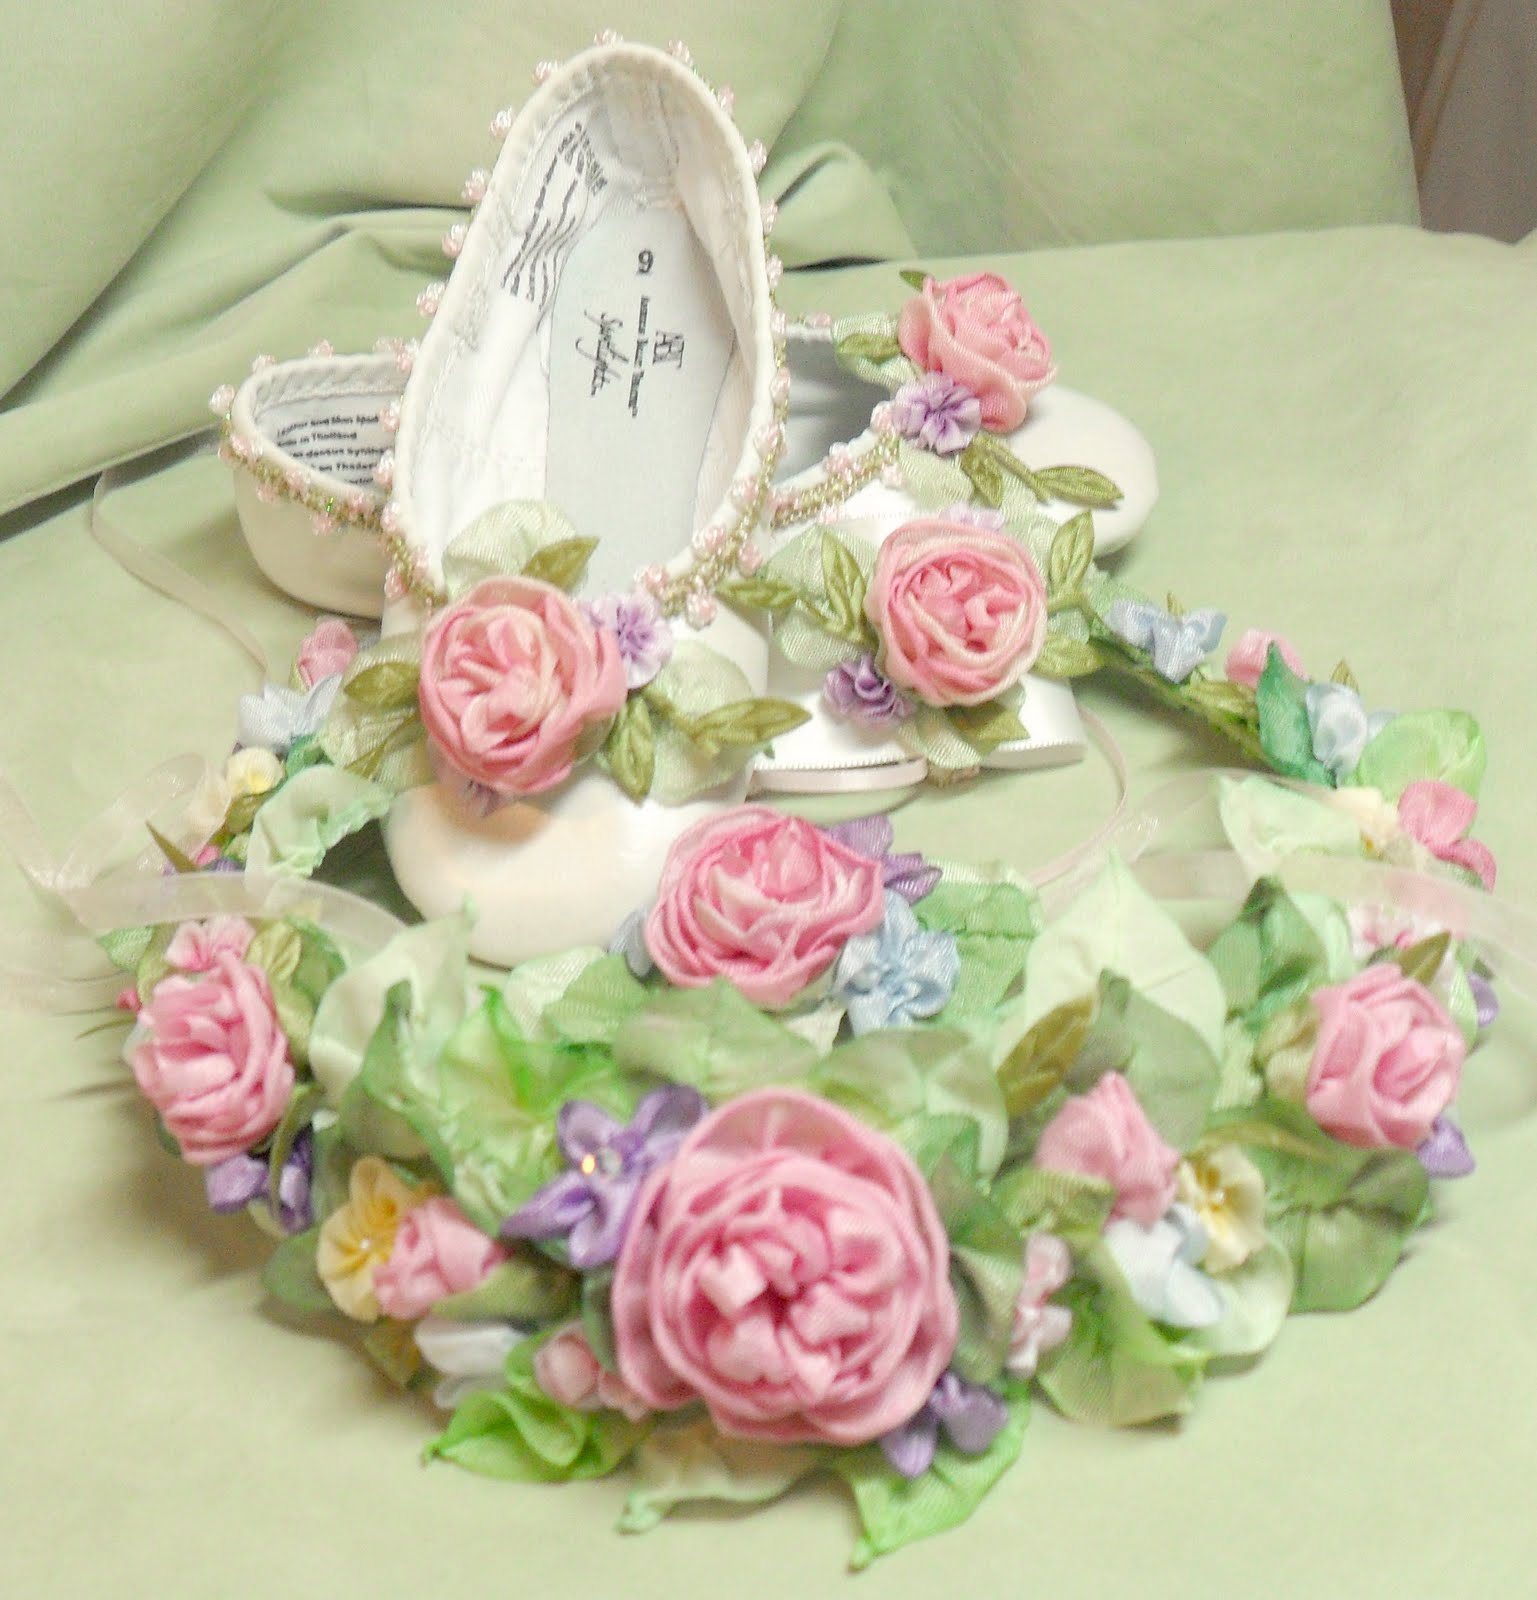 Ribbon Work Designs http://lambsandivydesigns.blogspot.com/2011/08/wedding-flowers-in-ribbon-work.html